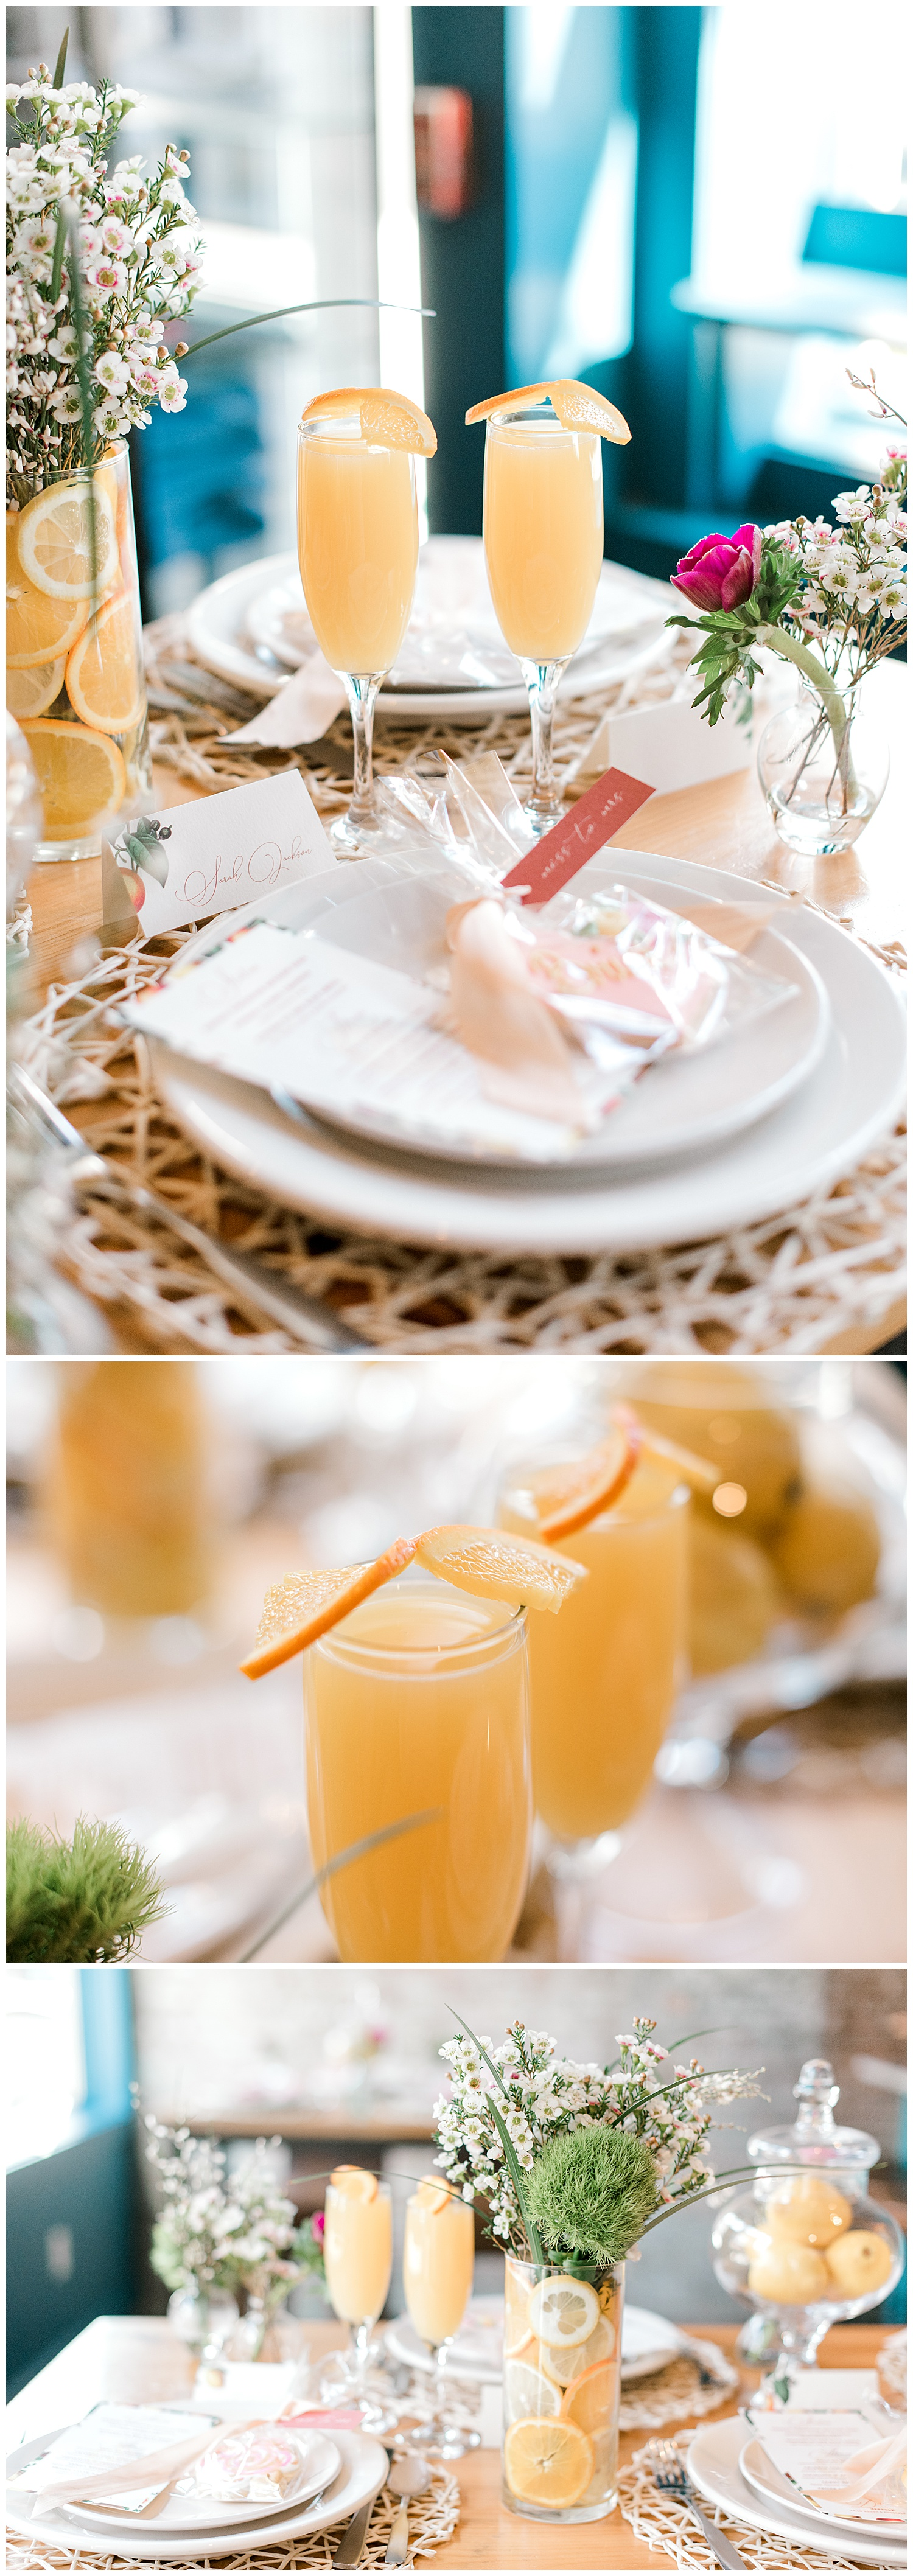 feburary12-halfshell-newport-bridal-shower-photography-8.jpg